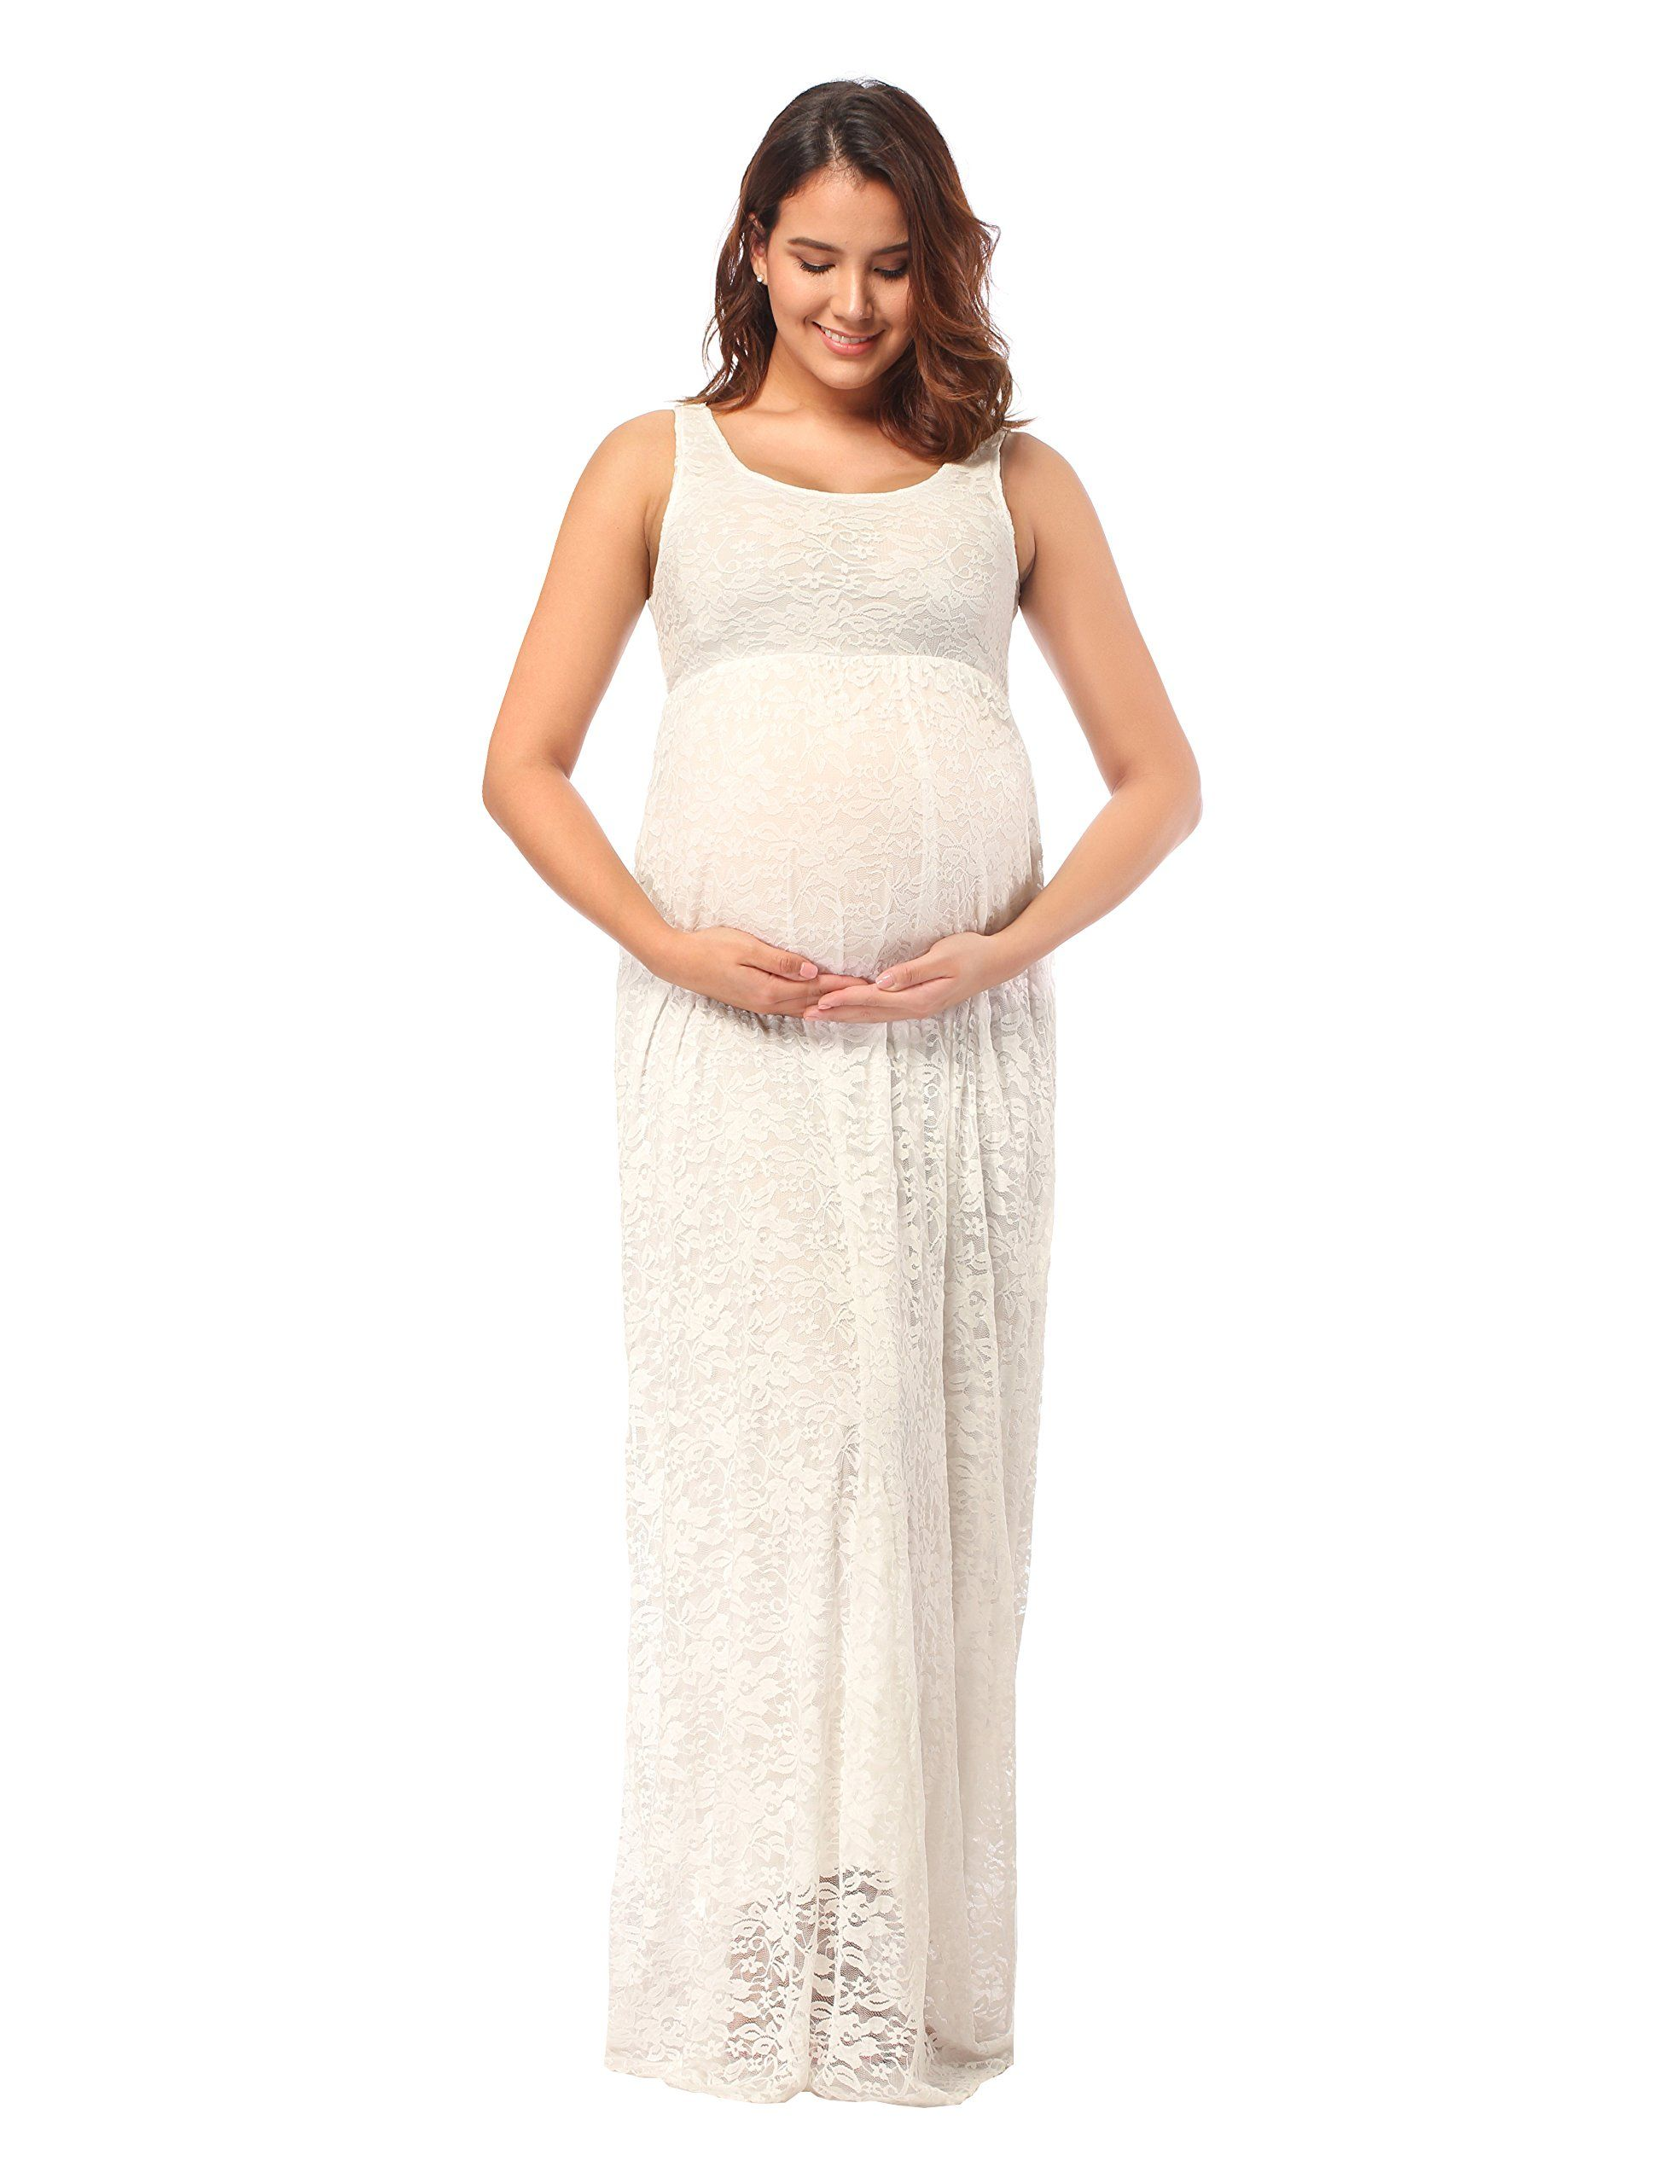 c766d31055ab5 Maternity Outfits - dressy maternity dresses : JustVH Womens Maternity  Sleeveless Long Length Lace Maxi Photography Dress * To check out better  for this ...